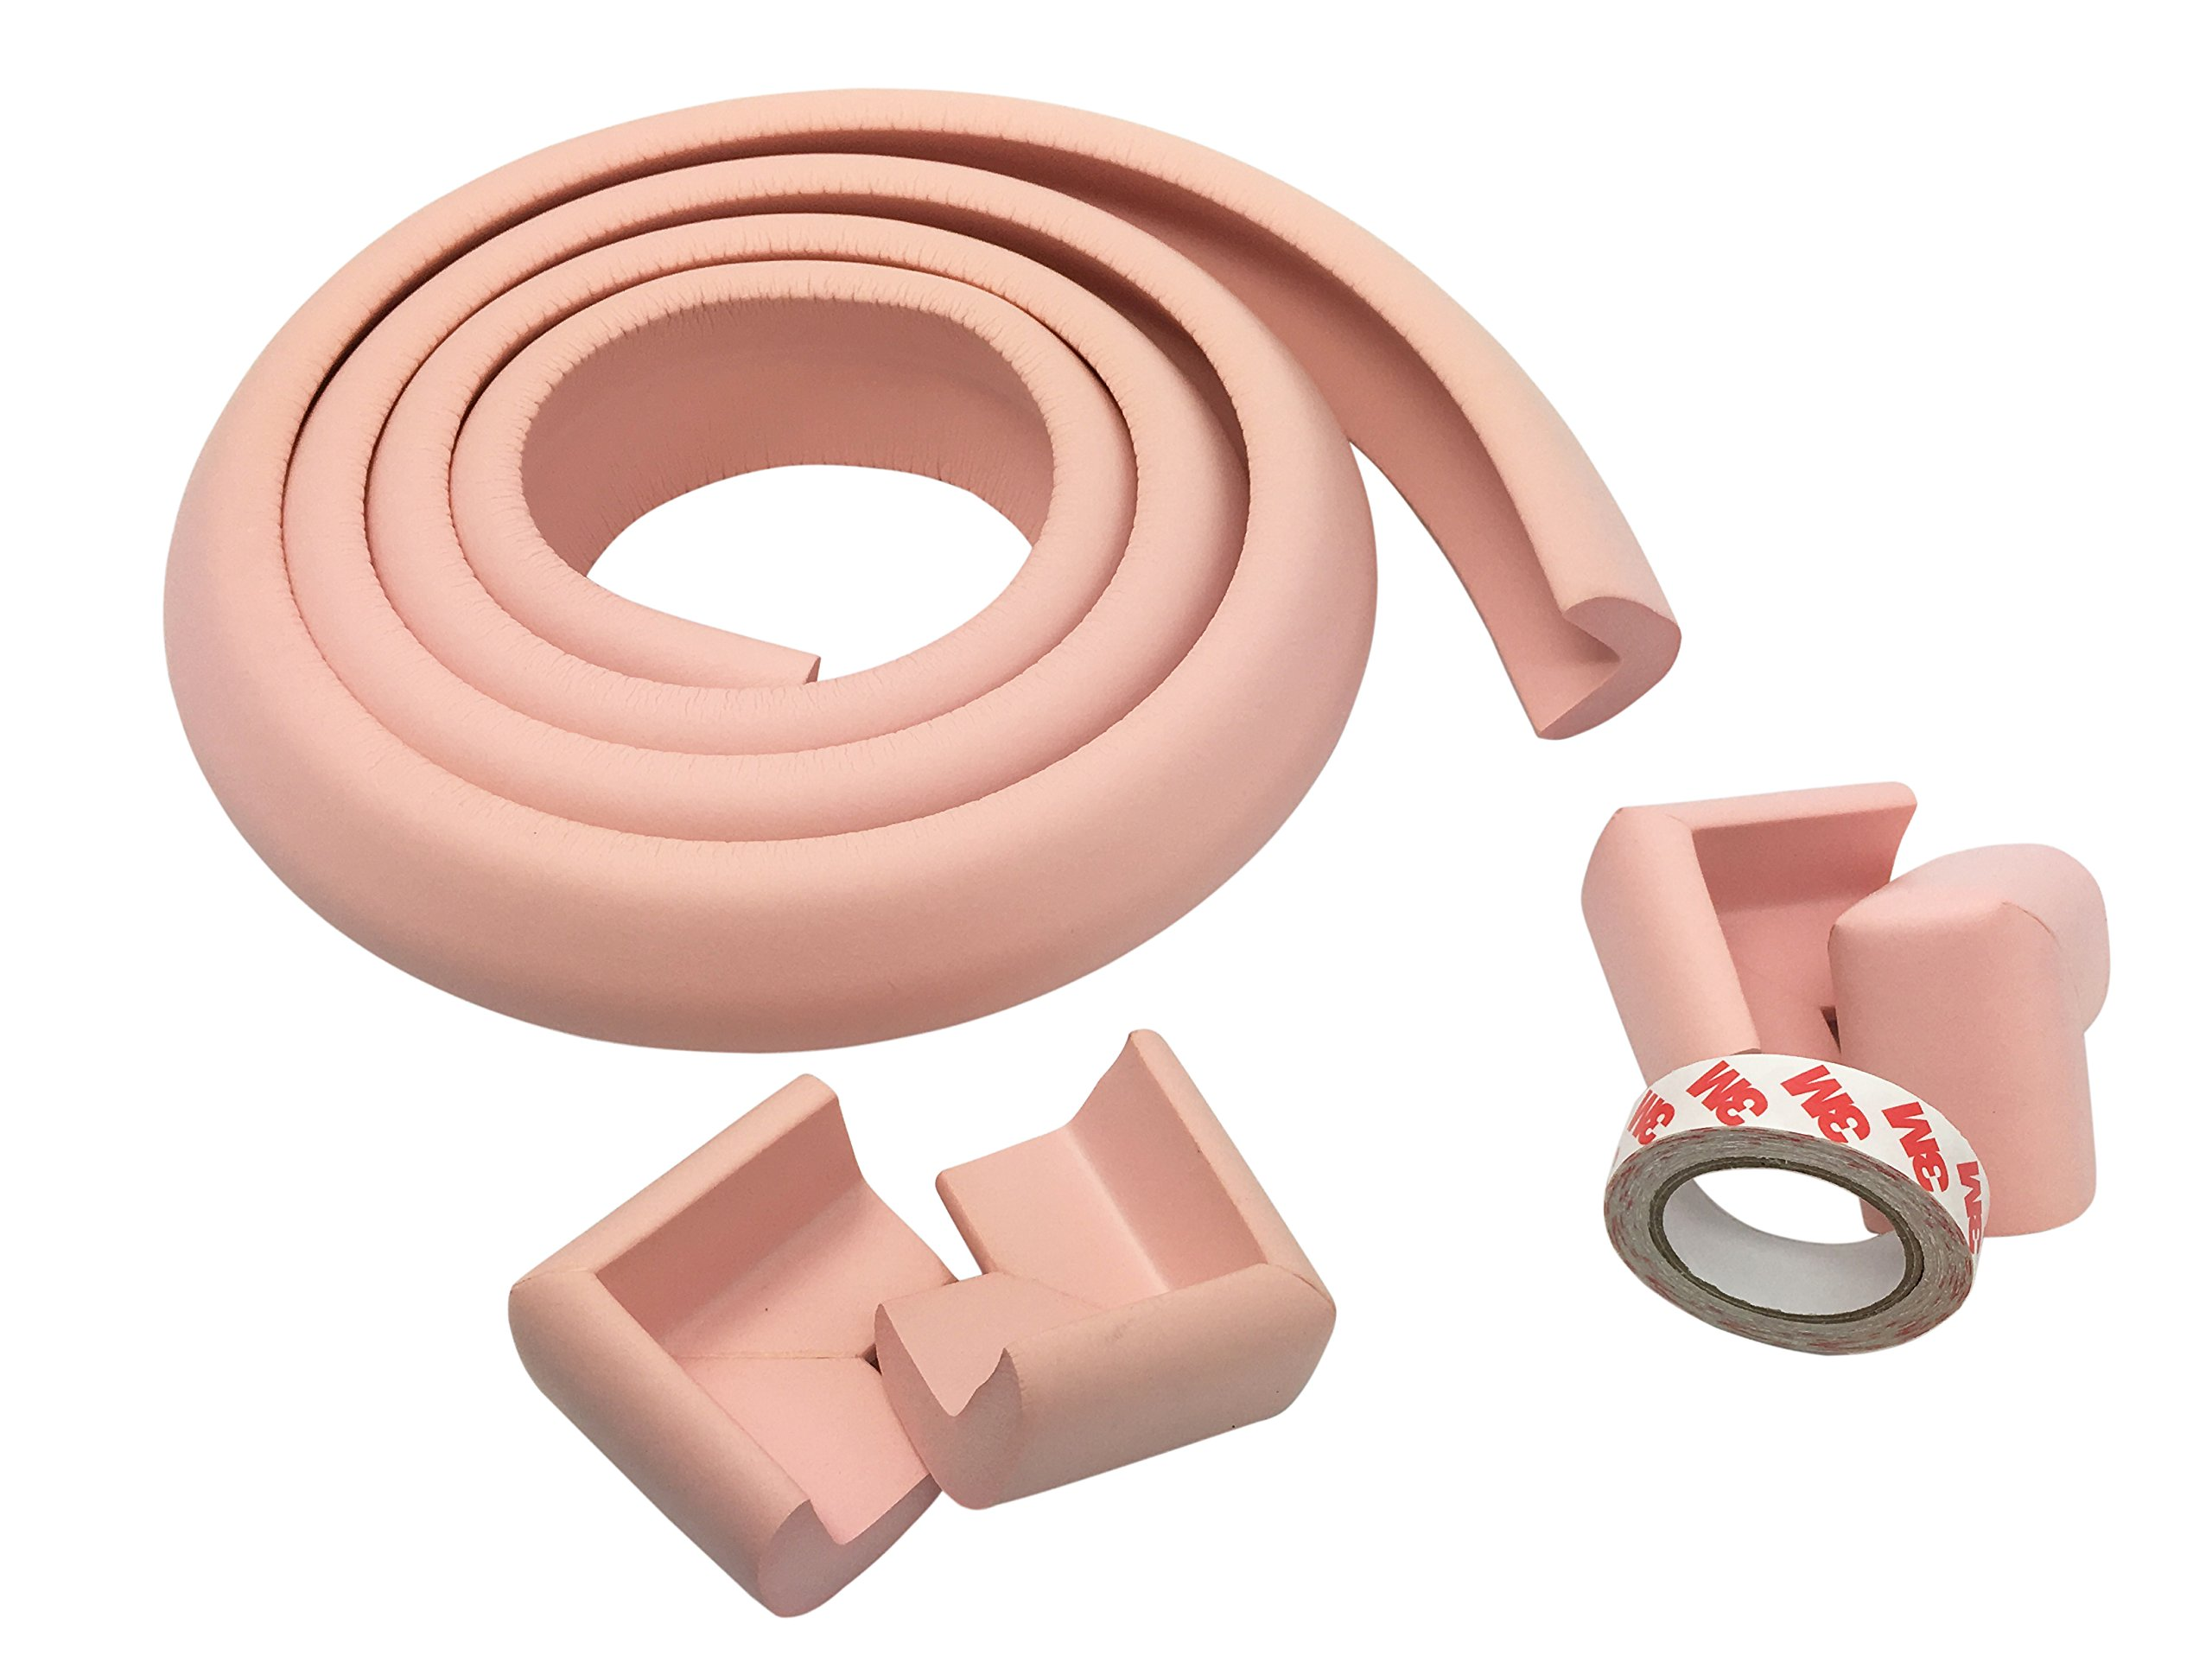 Foam High Density Furniture Table Edge Protector and Corner Protectors(Pack of 4) for Baby Safety Bumper Guard Set 6.5 Feet (2 Meter) (Pink)